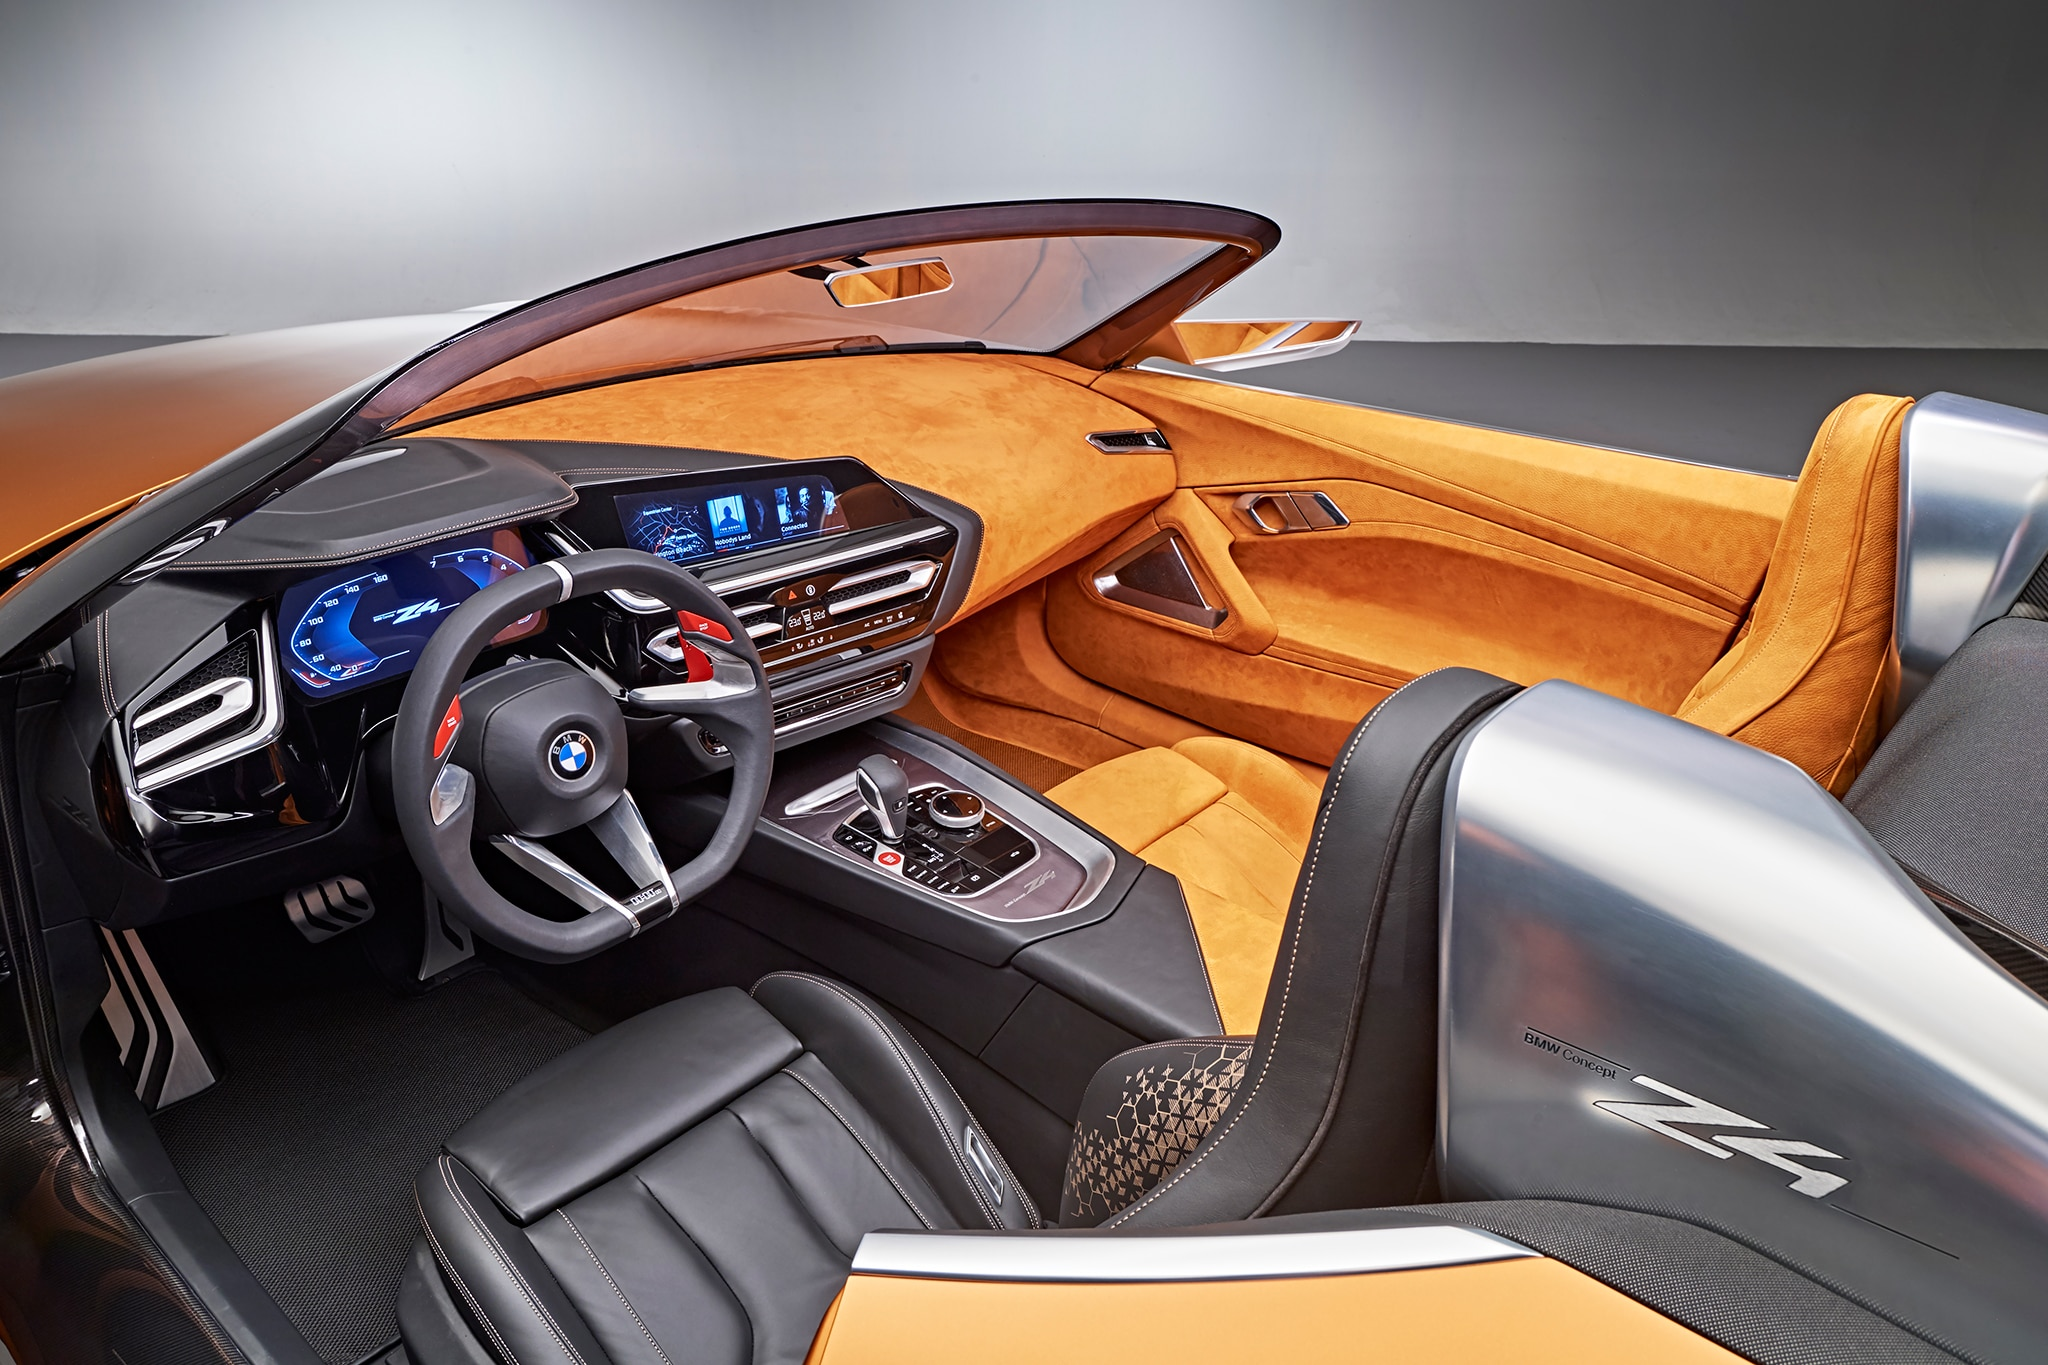 bmw concept car interior images galleries with a bite. Black Bedroom Furniture Sets. Home Design Ideas